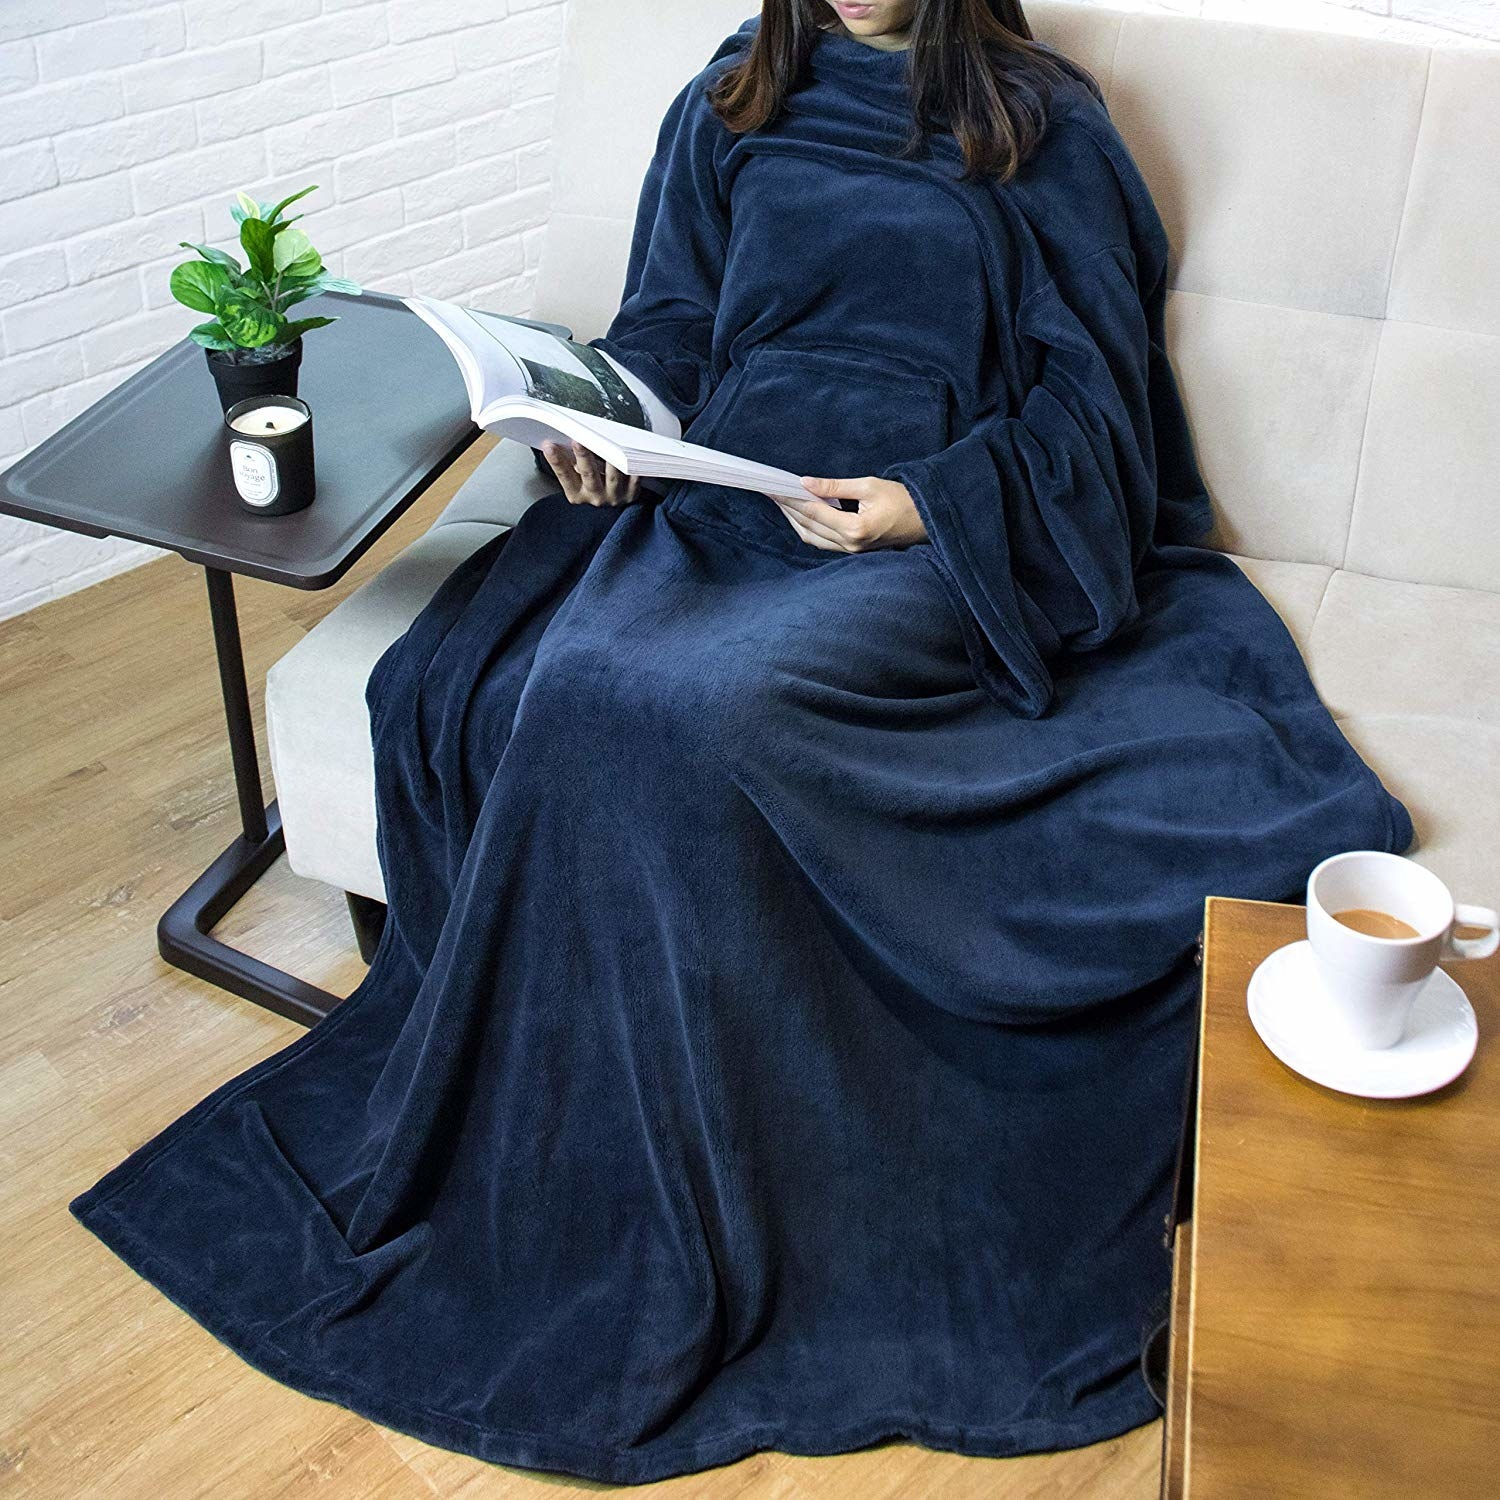 a person sitting on a couch wearing the fleece blanket in navy